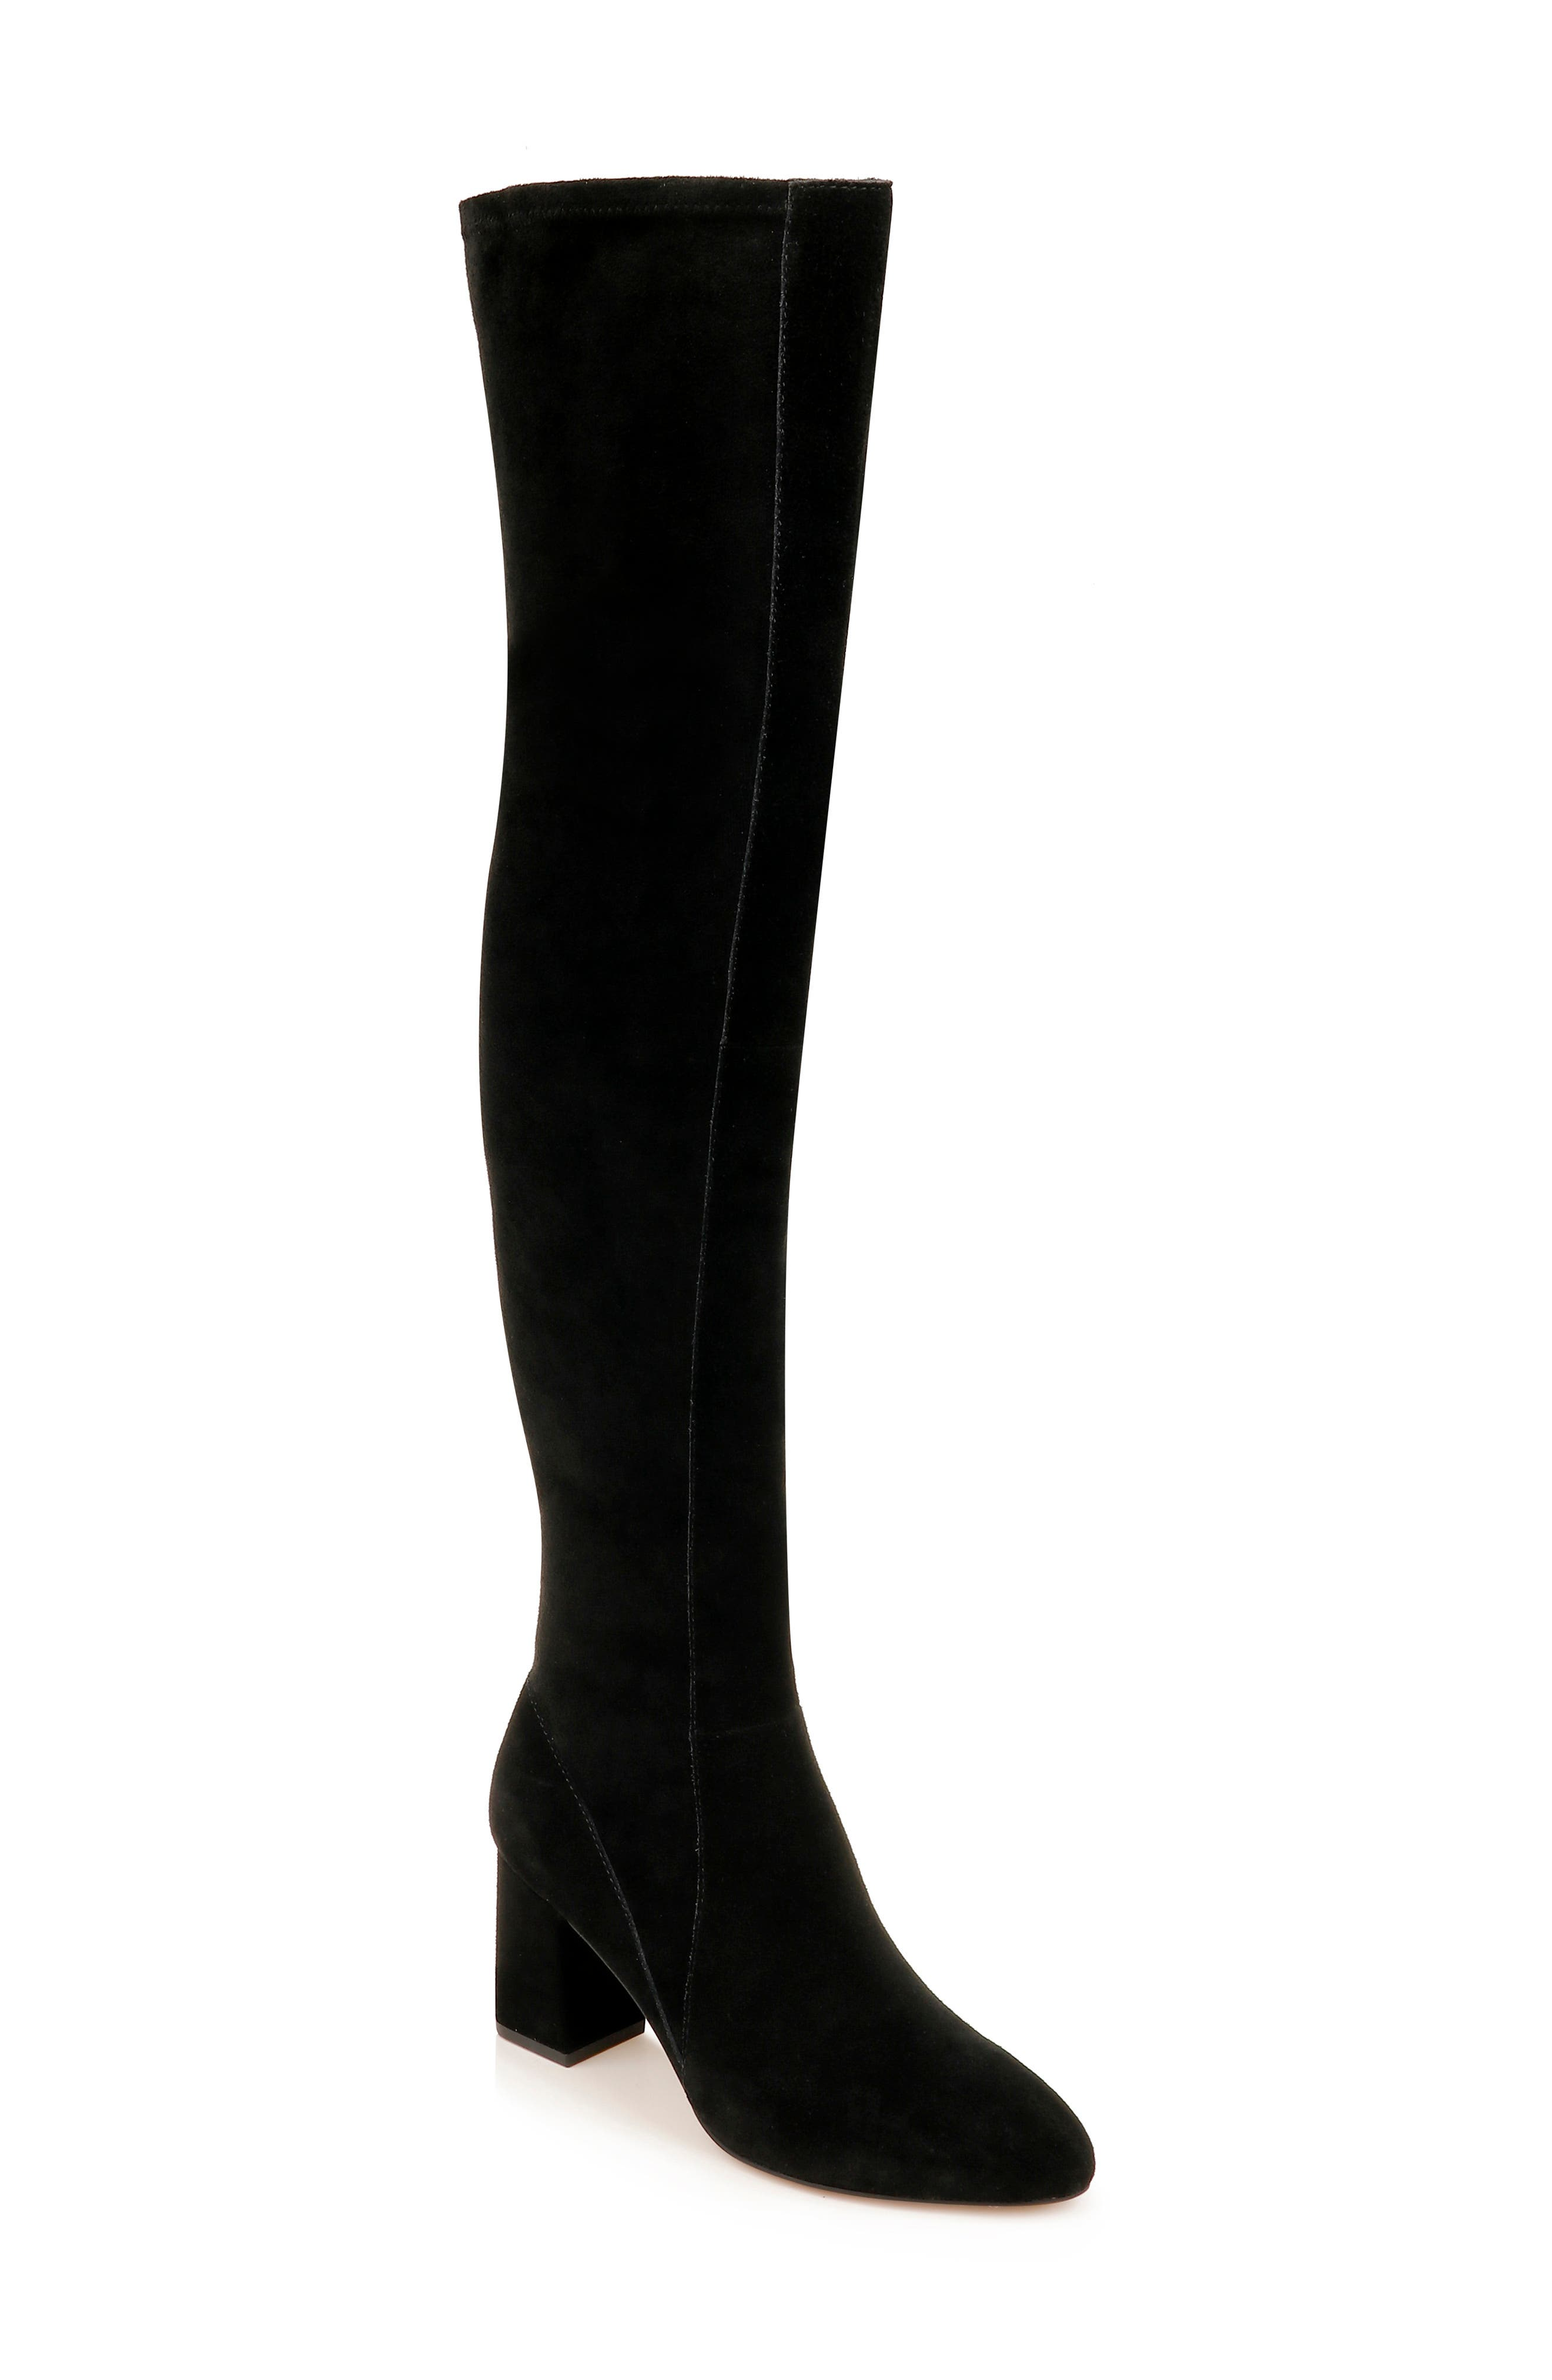 Make a bold, modern style statement in this over-the-knee boot finished with a pointy toe and block heel. Style Name: Splendid Kensley Over The Knee Boot (Women). Style Number: 6145133. Available in stores.